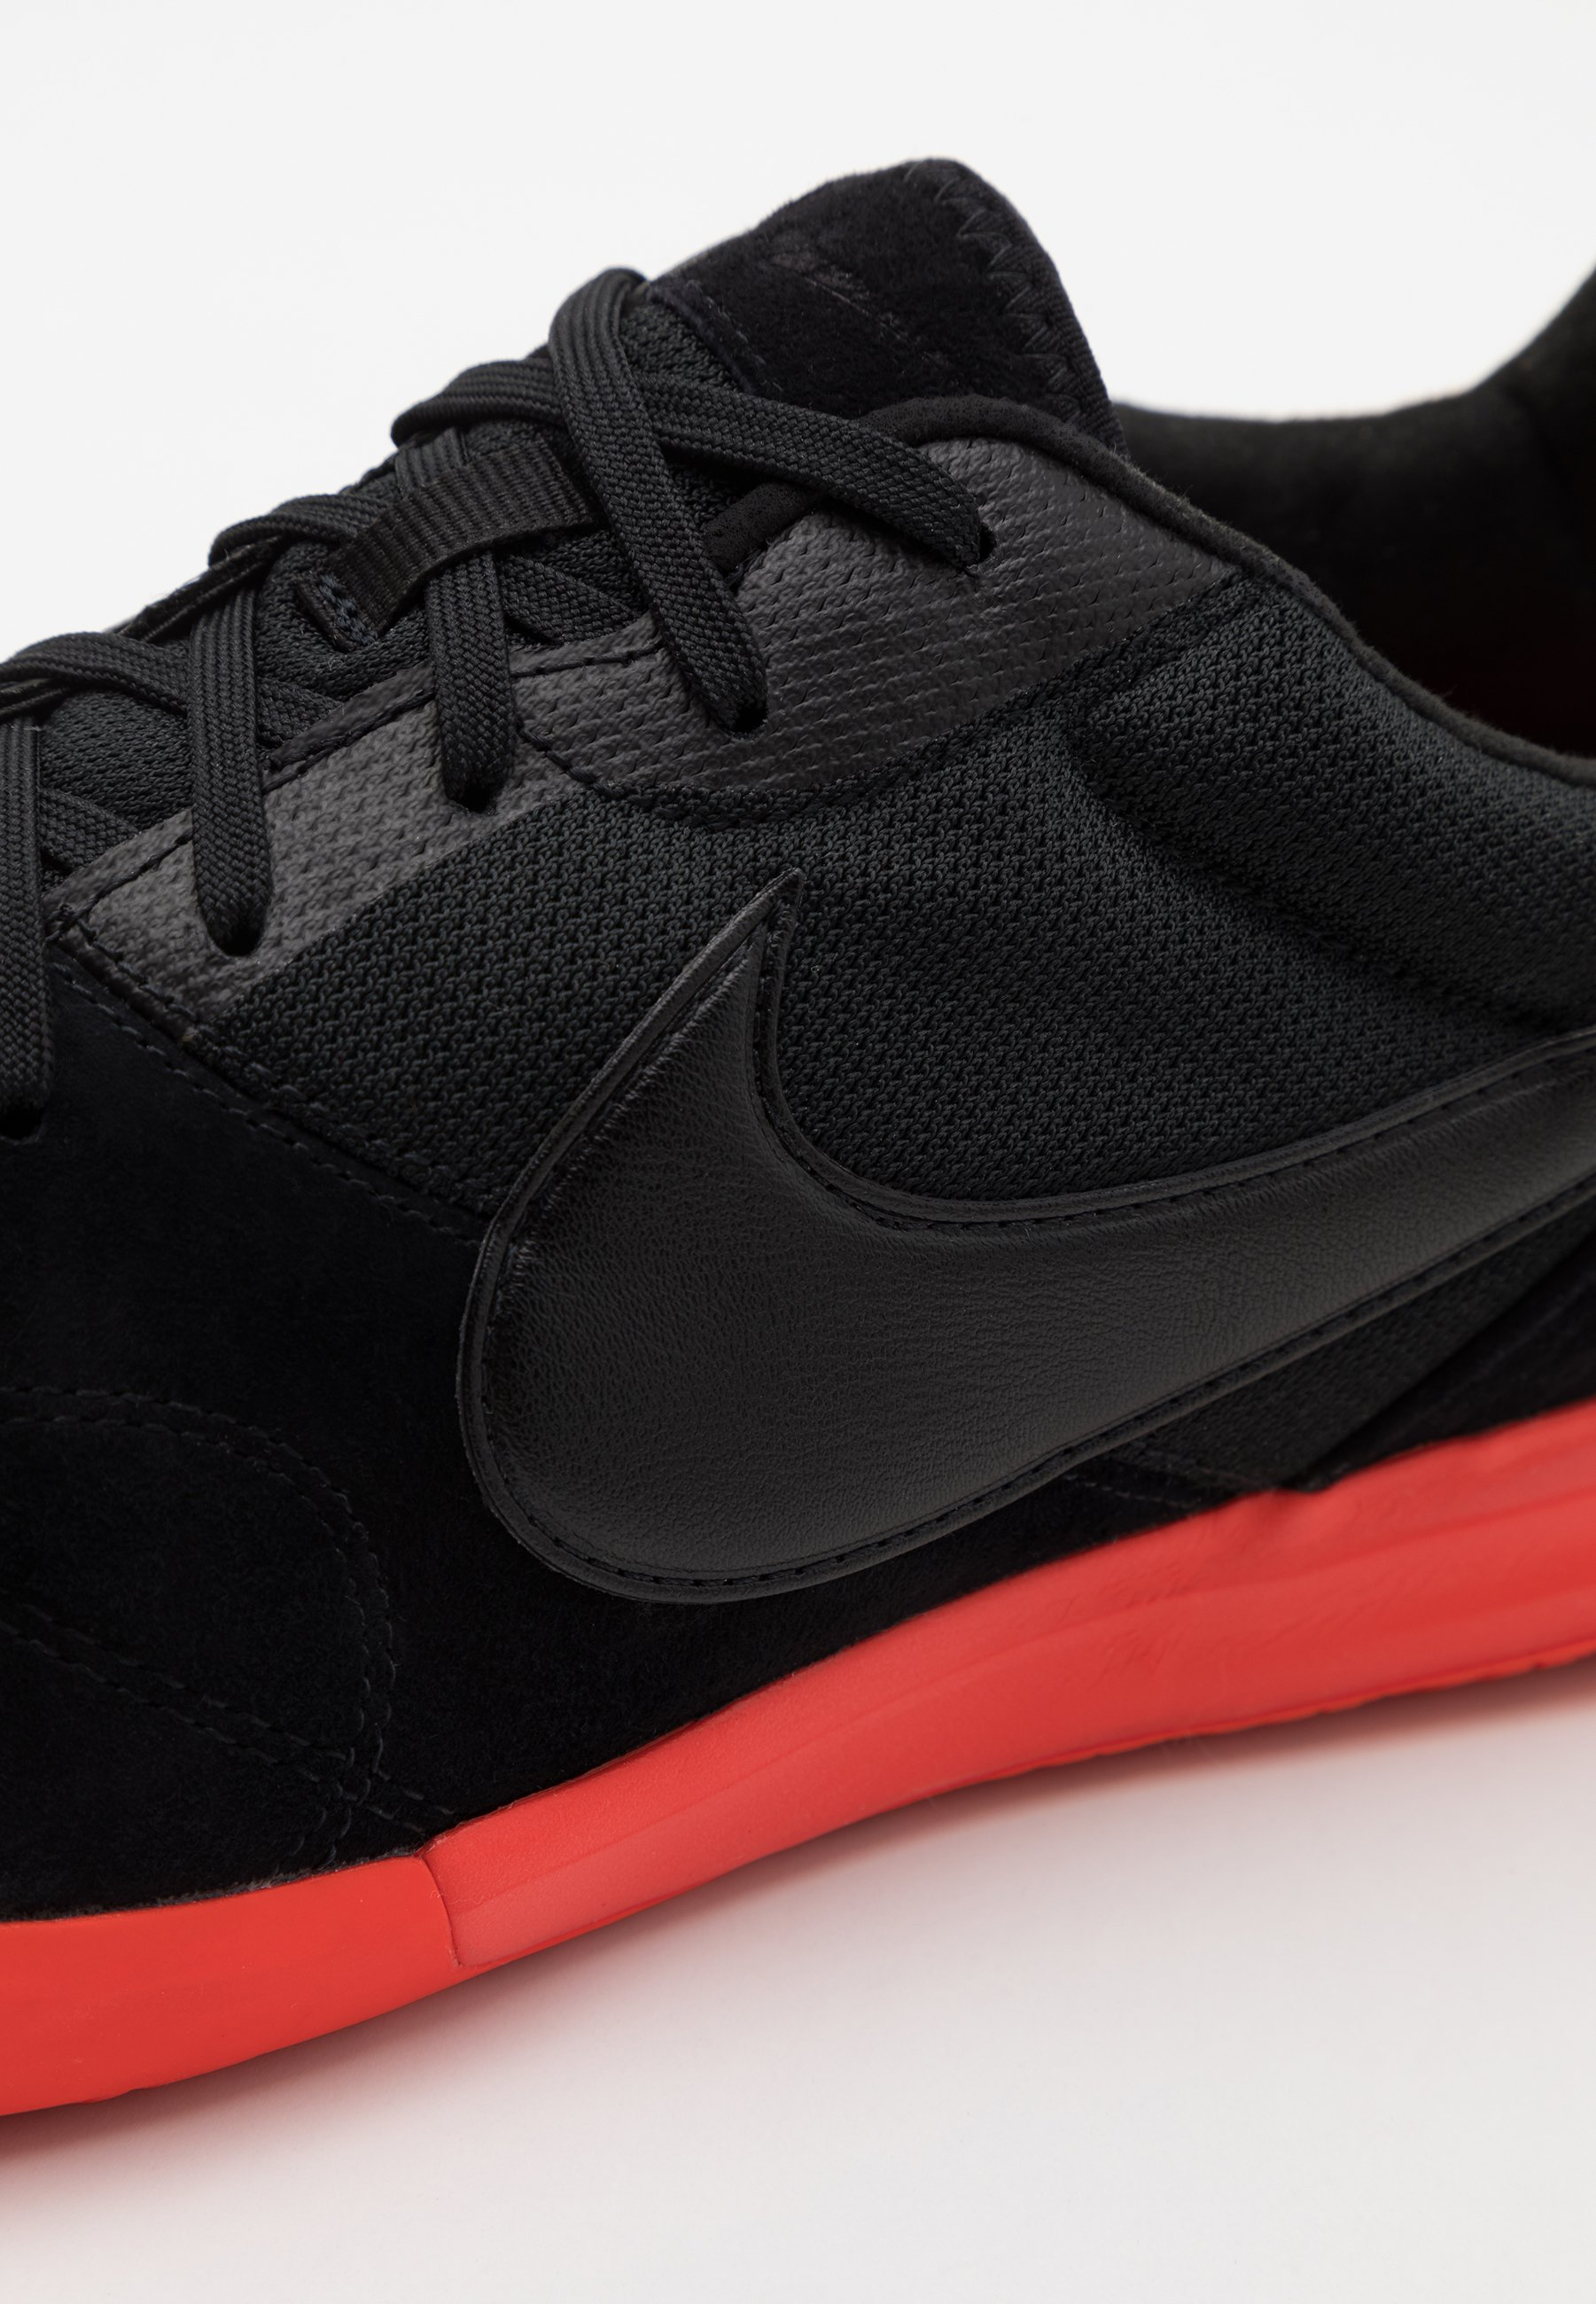 THE PREMIER II SALA Chaussures de foot en salle blackchile red